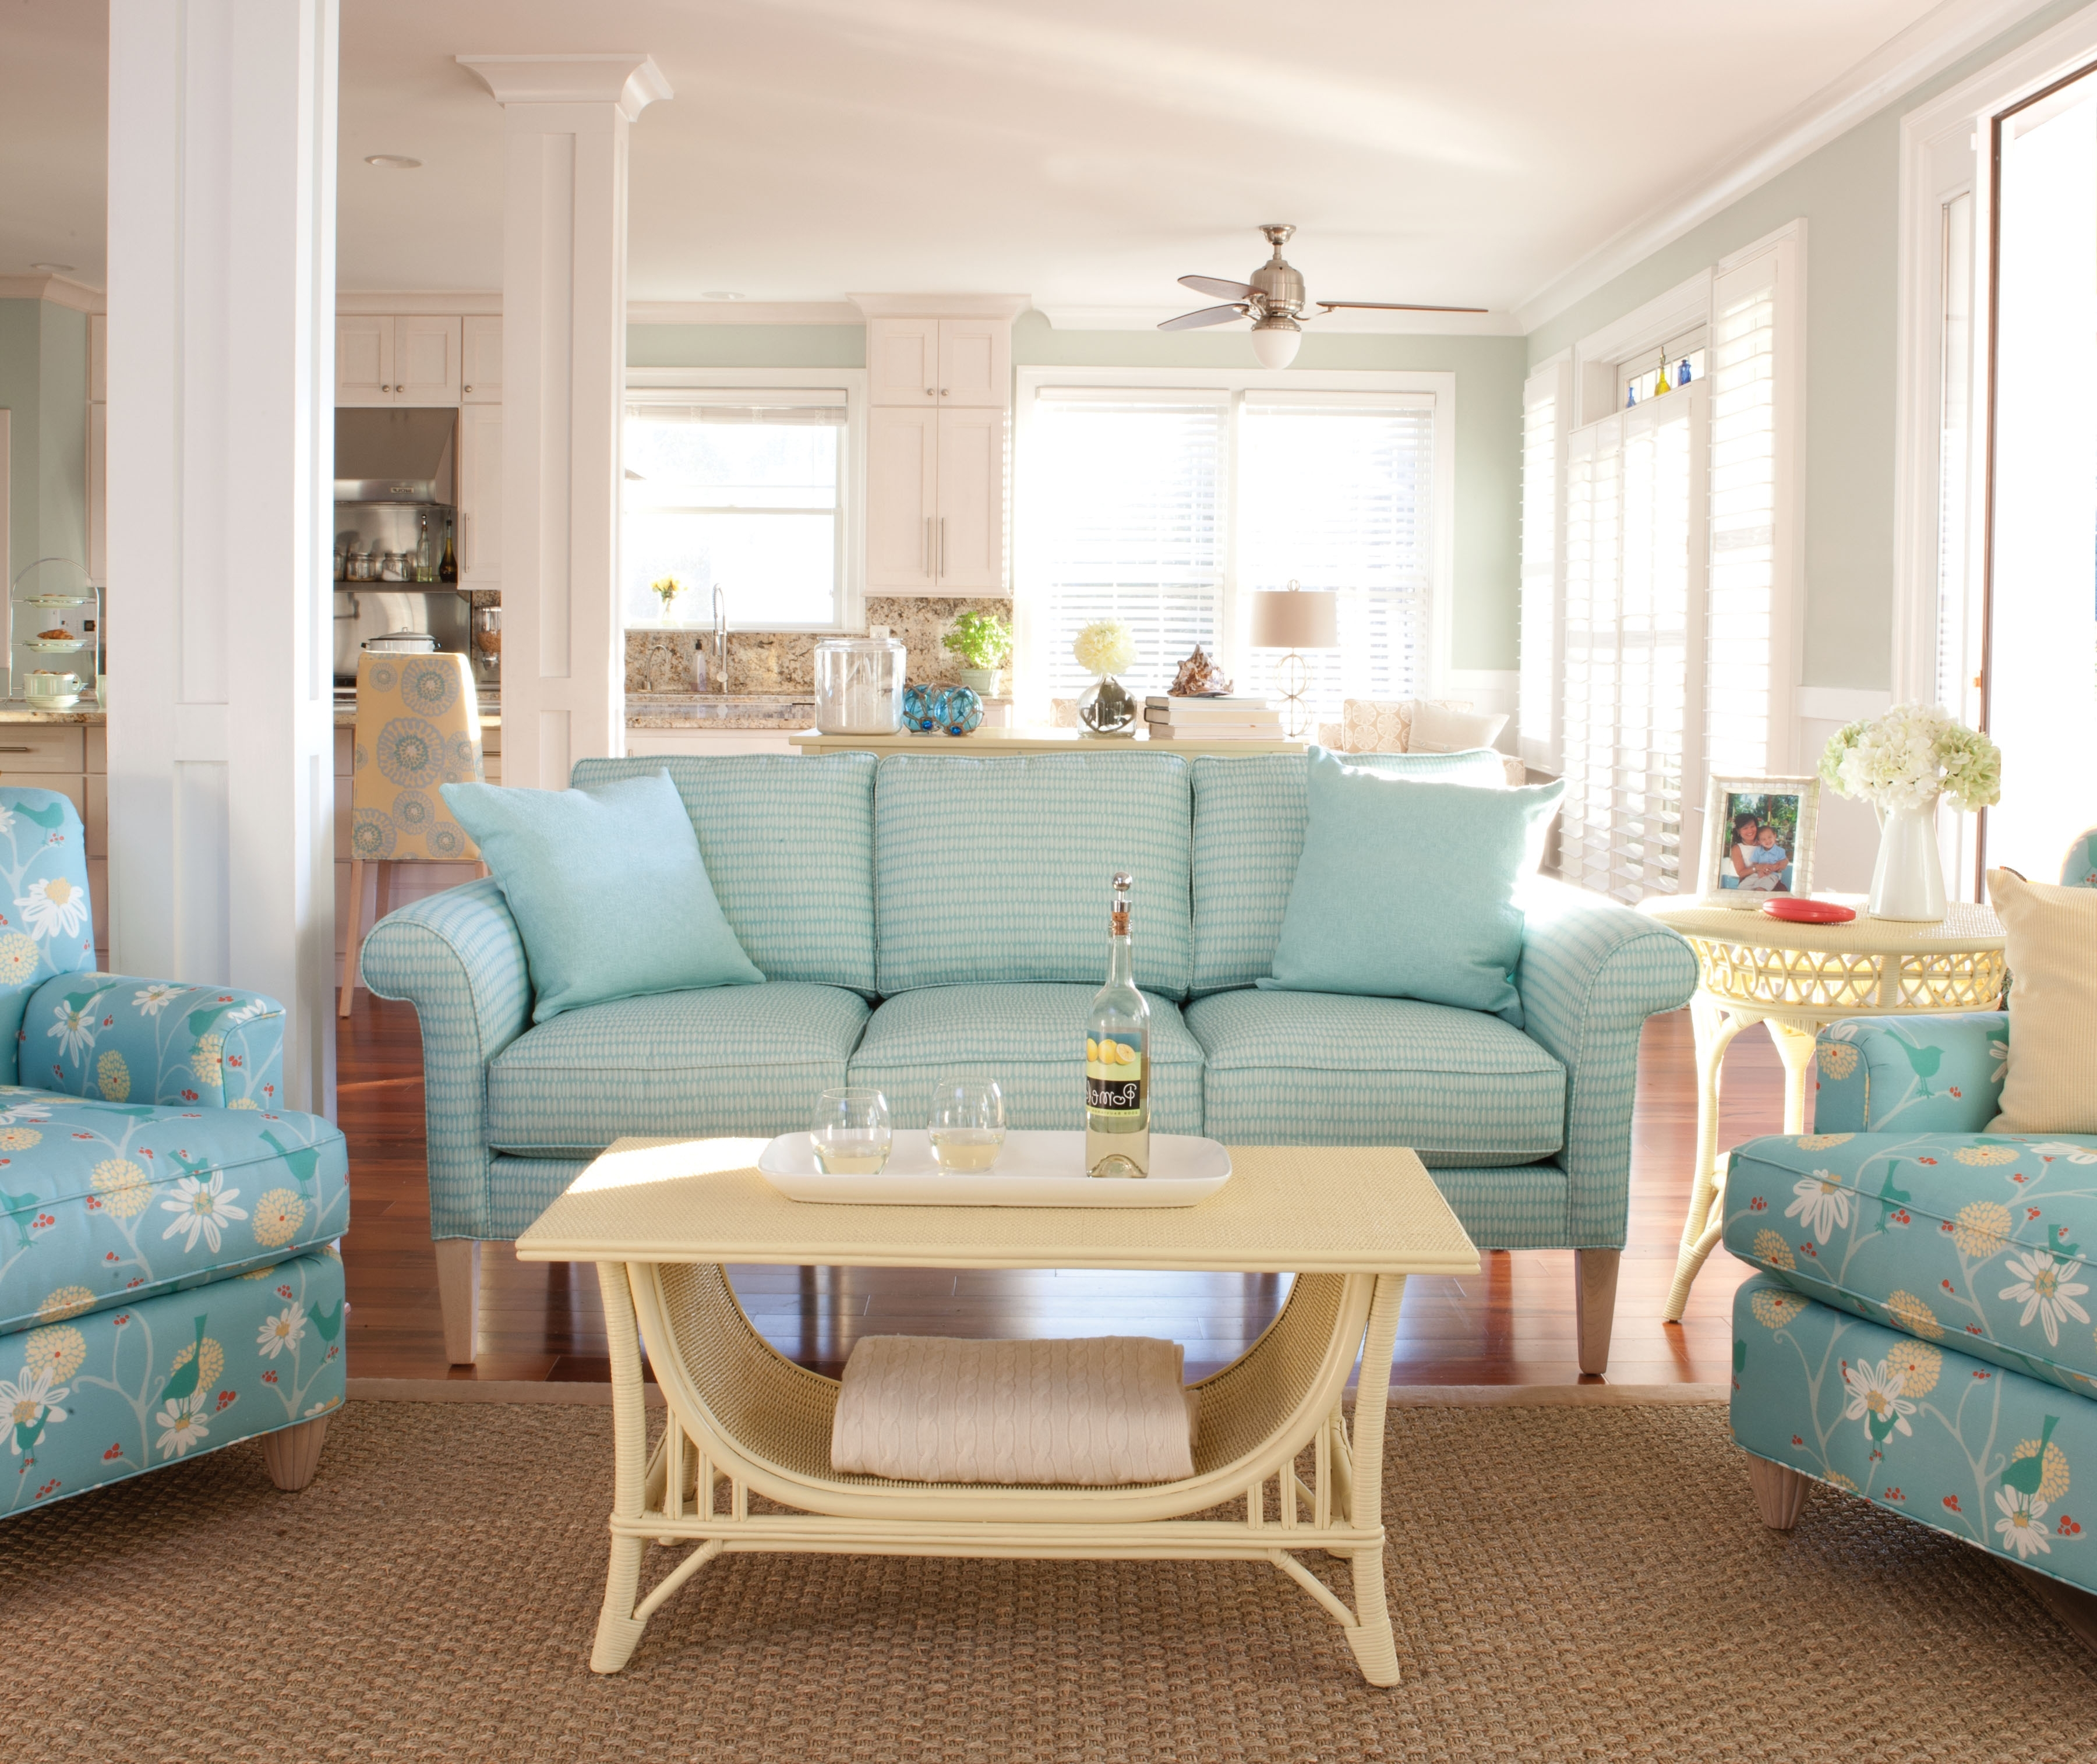 Country Cottage Sofas And Chairs – Lightingridgecellars With Popular Country Cottage Sofas And Chairs (View 4 of 15)